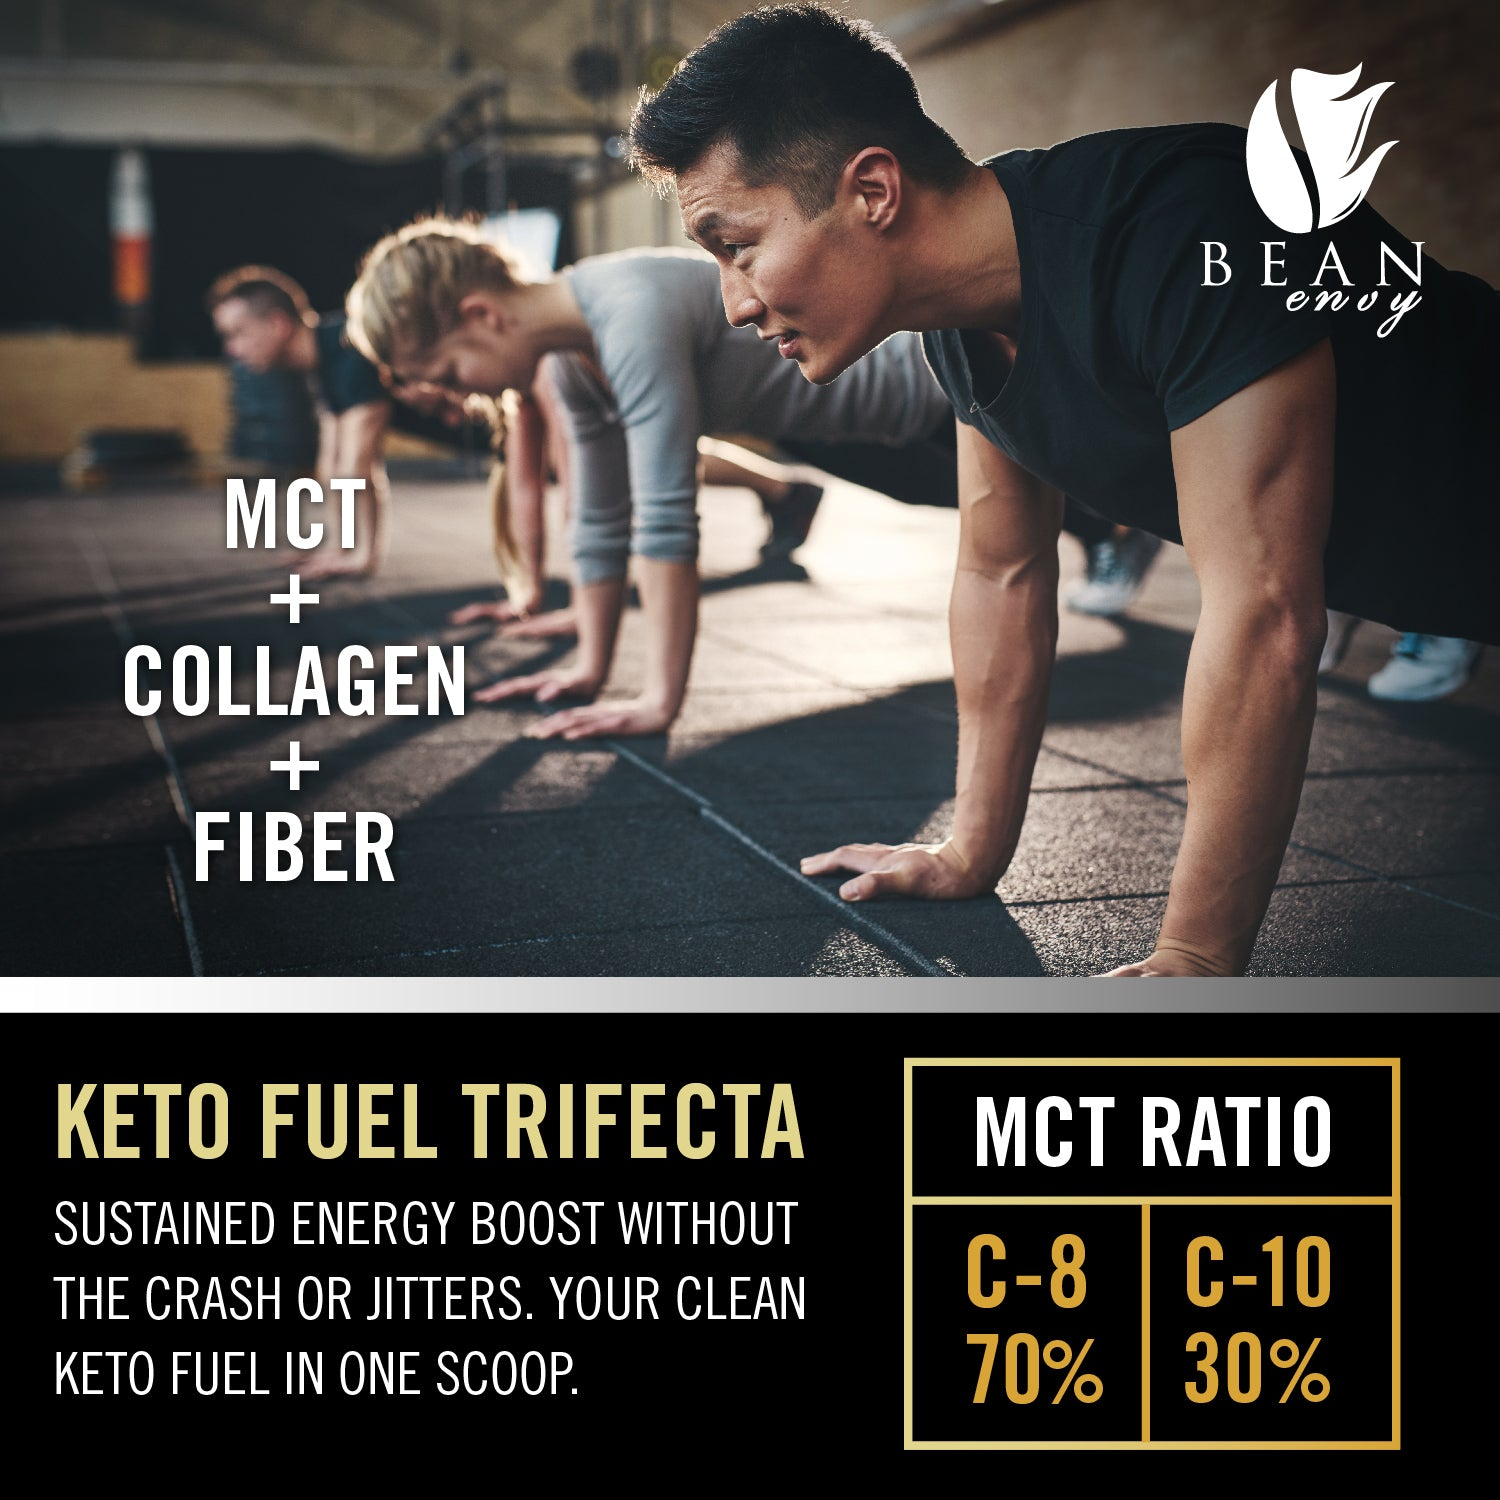 Bean Envy's MCT Oil Powder + Collagen + Prebiotic Acacia Fiber - 100% Pure MCT's - KETO Friendly - Energy Boost - Appetite Control - Healthy Gut Support